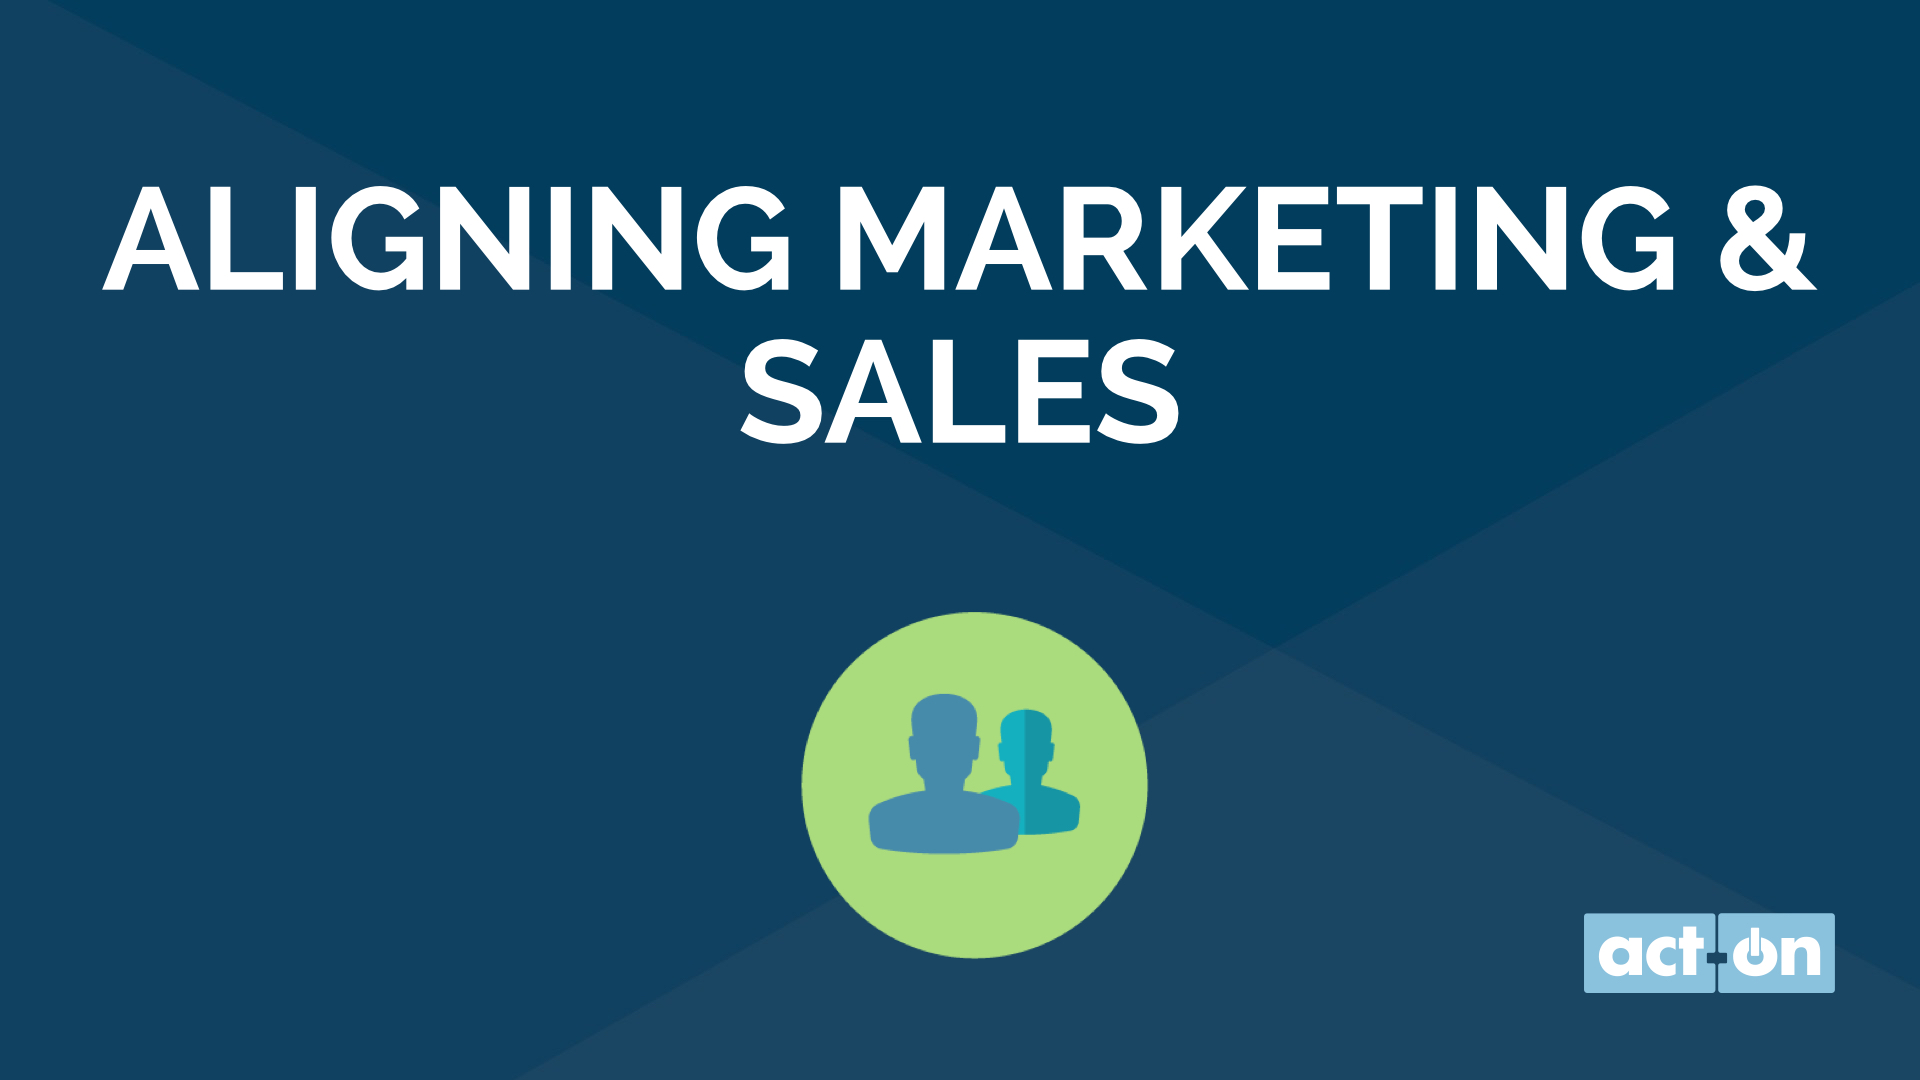 Aligning Marketing and Sales